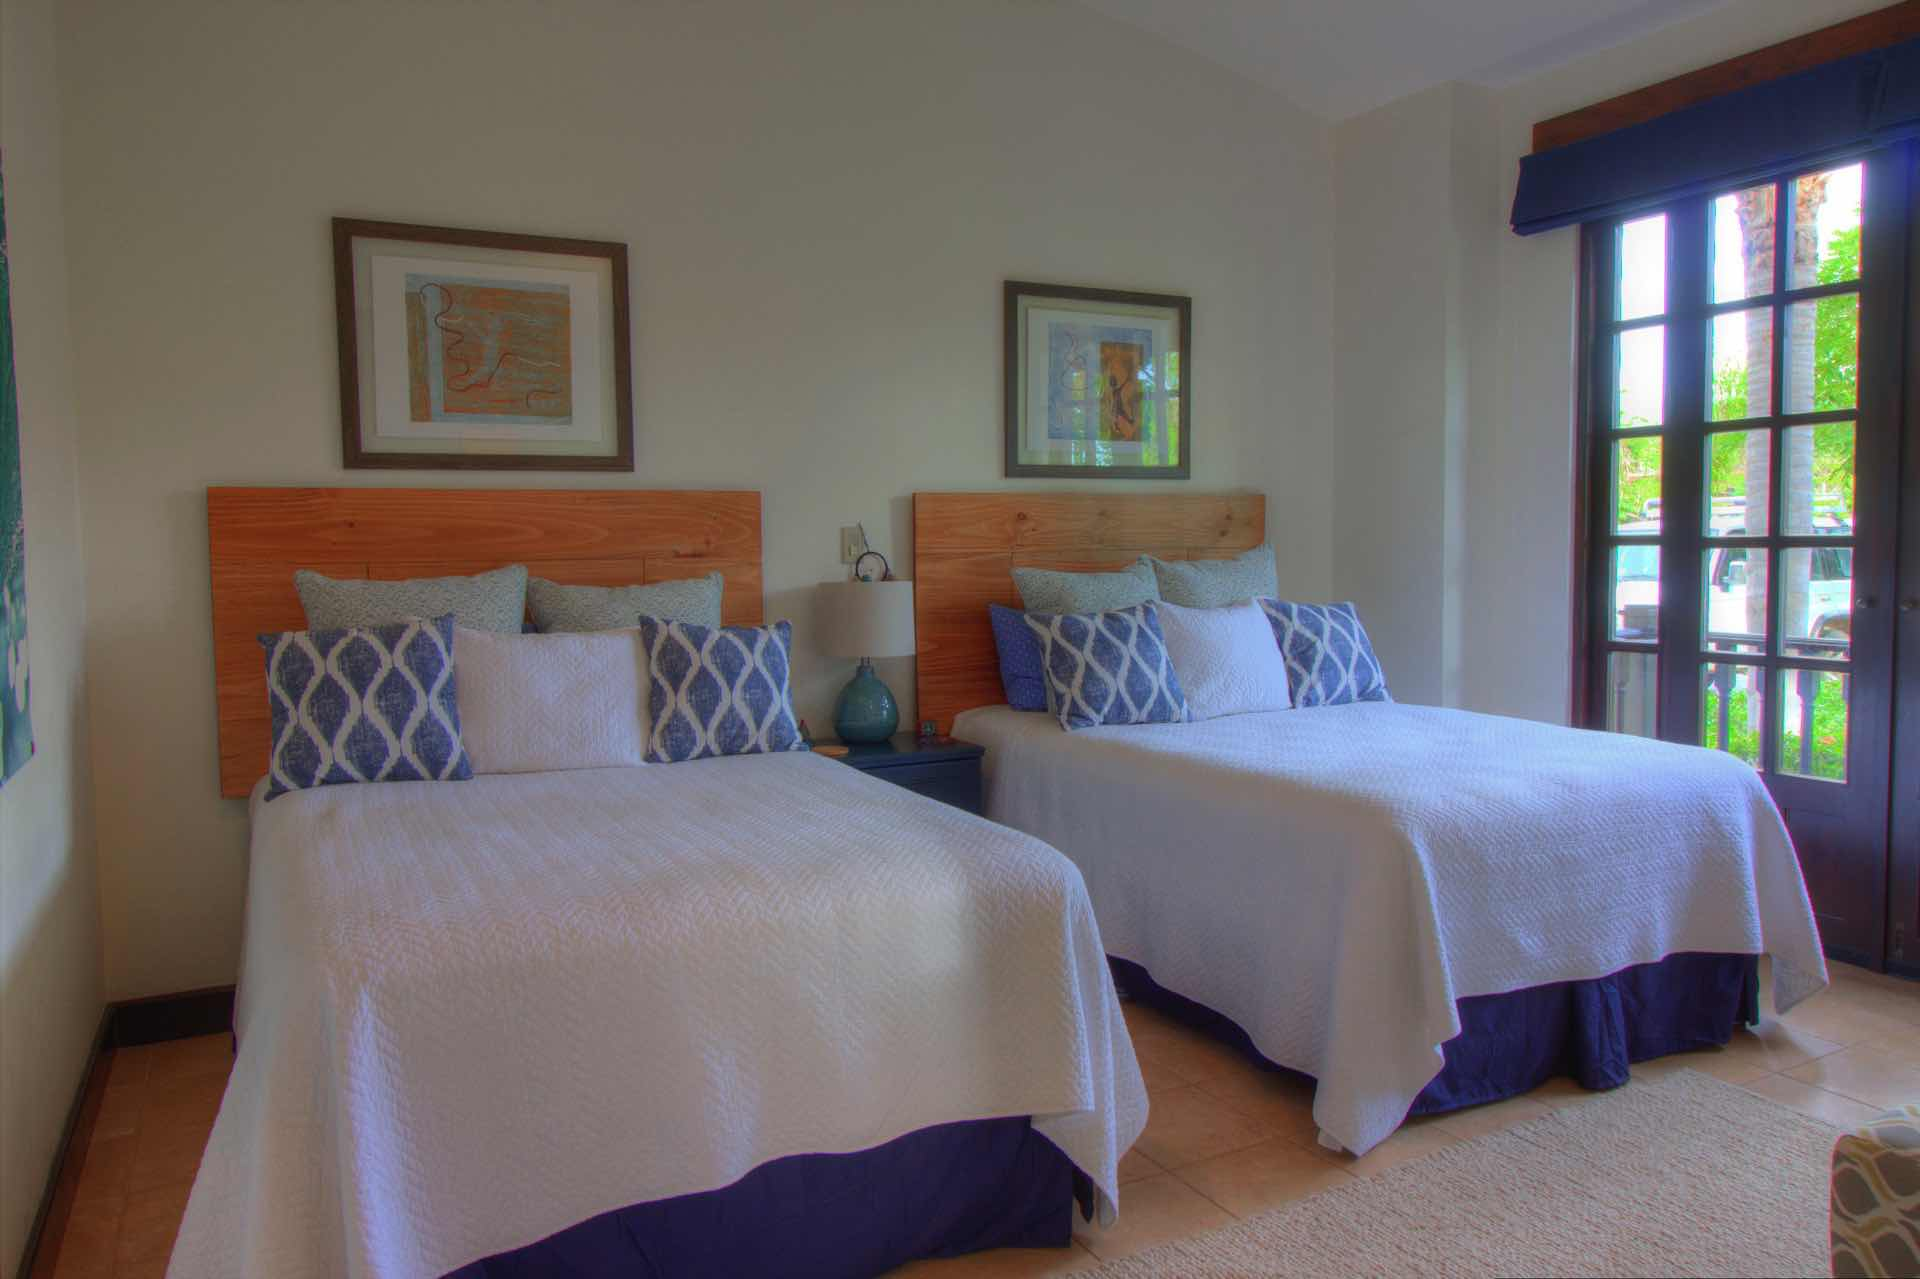 Guest Bedroom with Full Beds (2)